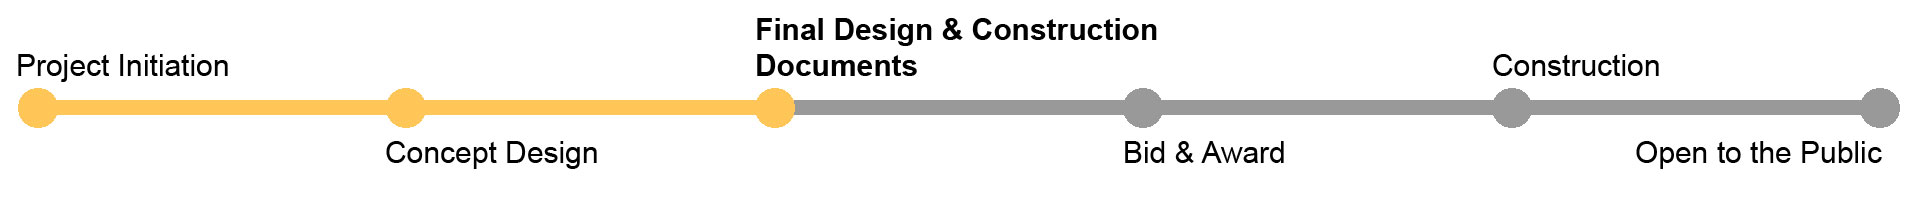 Final Design & Construction Documents